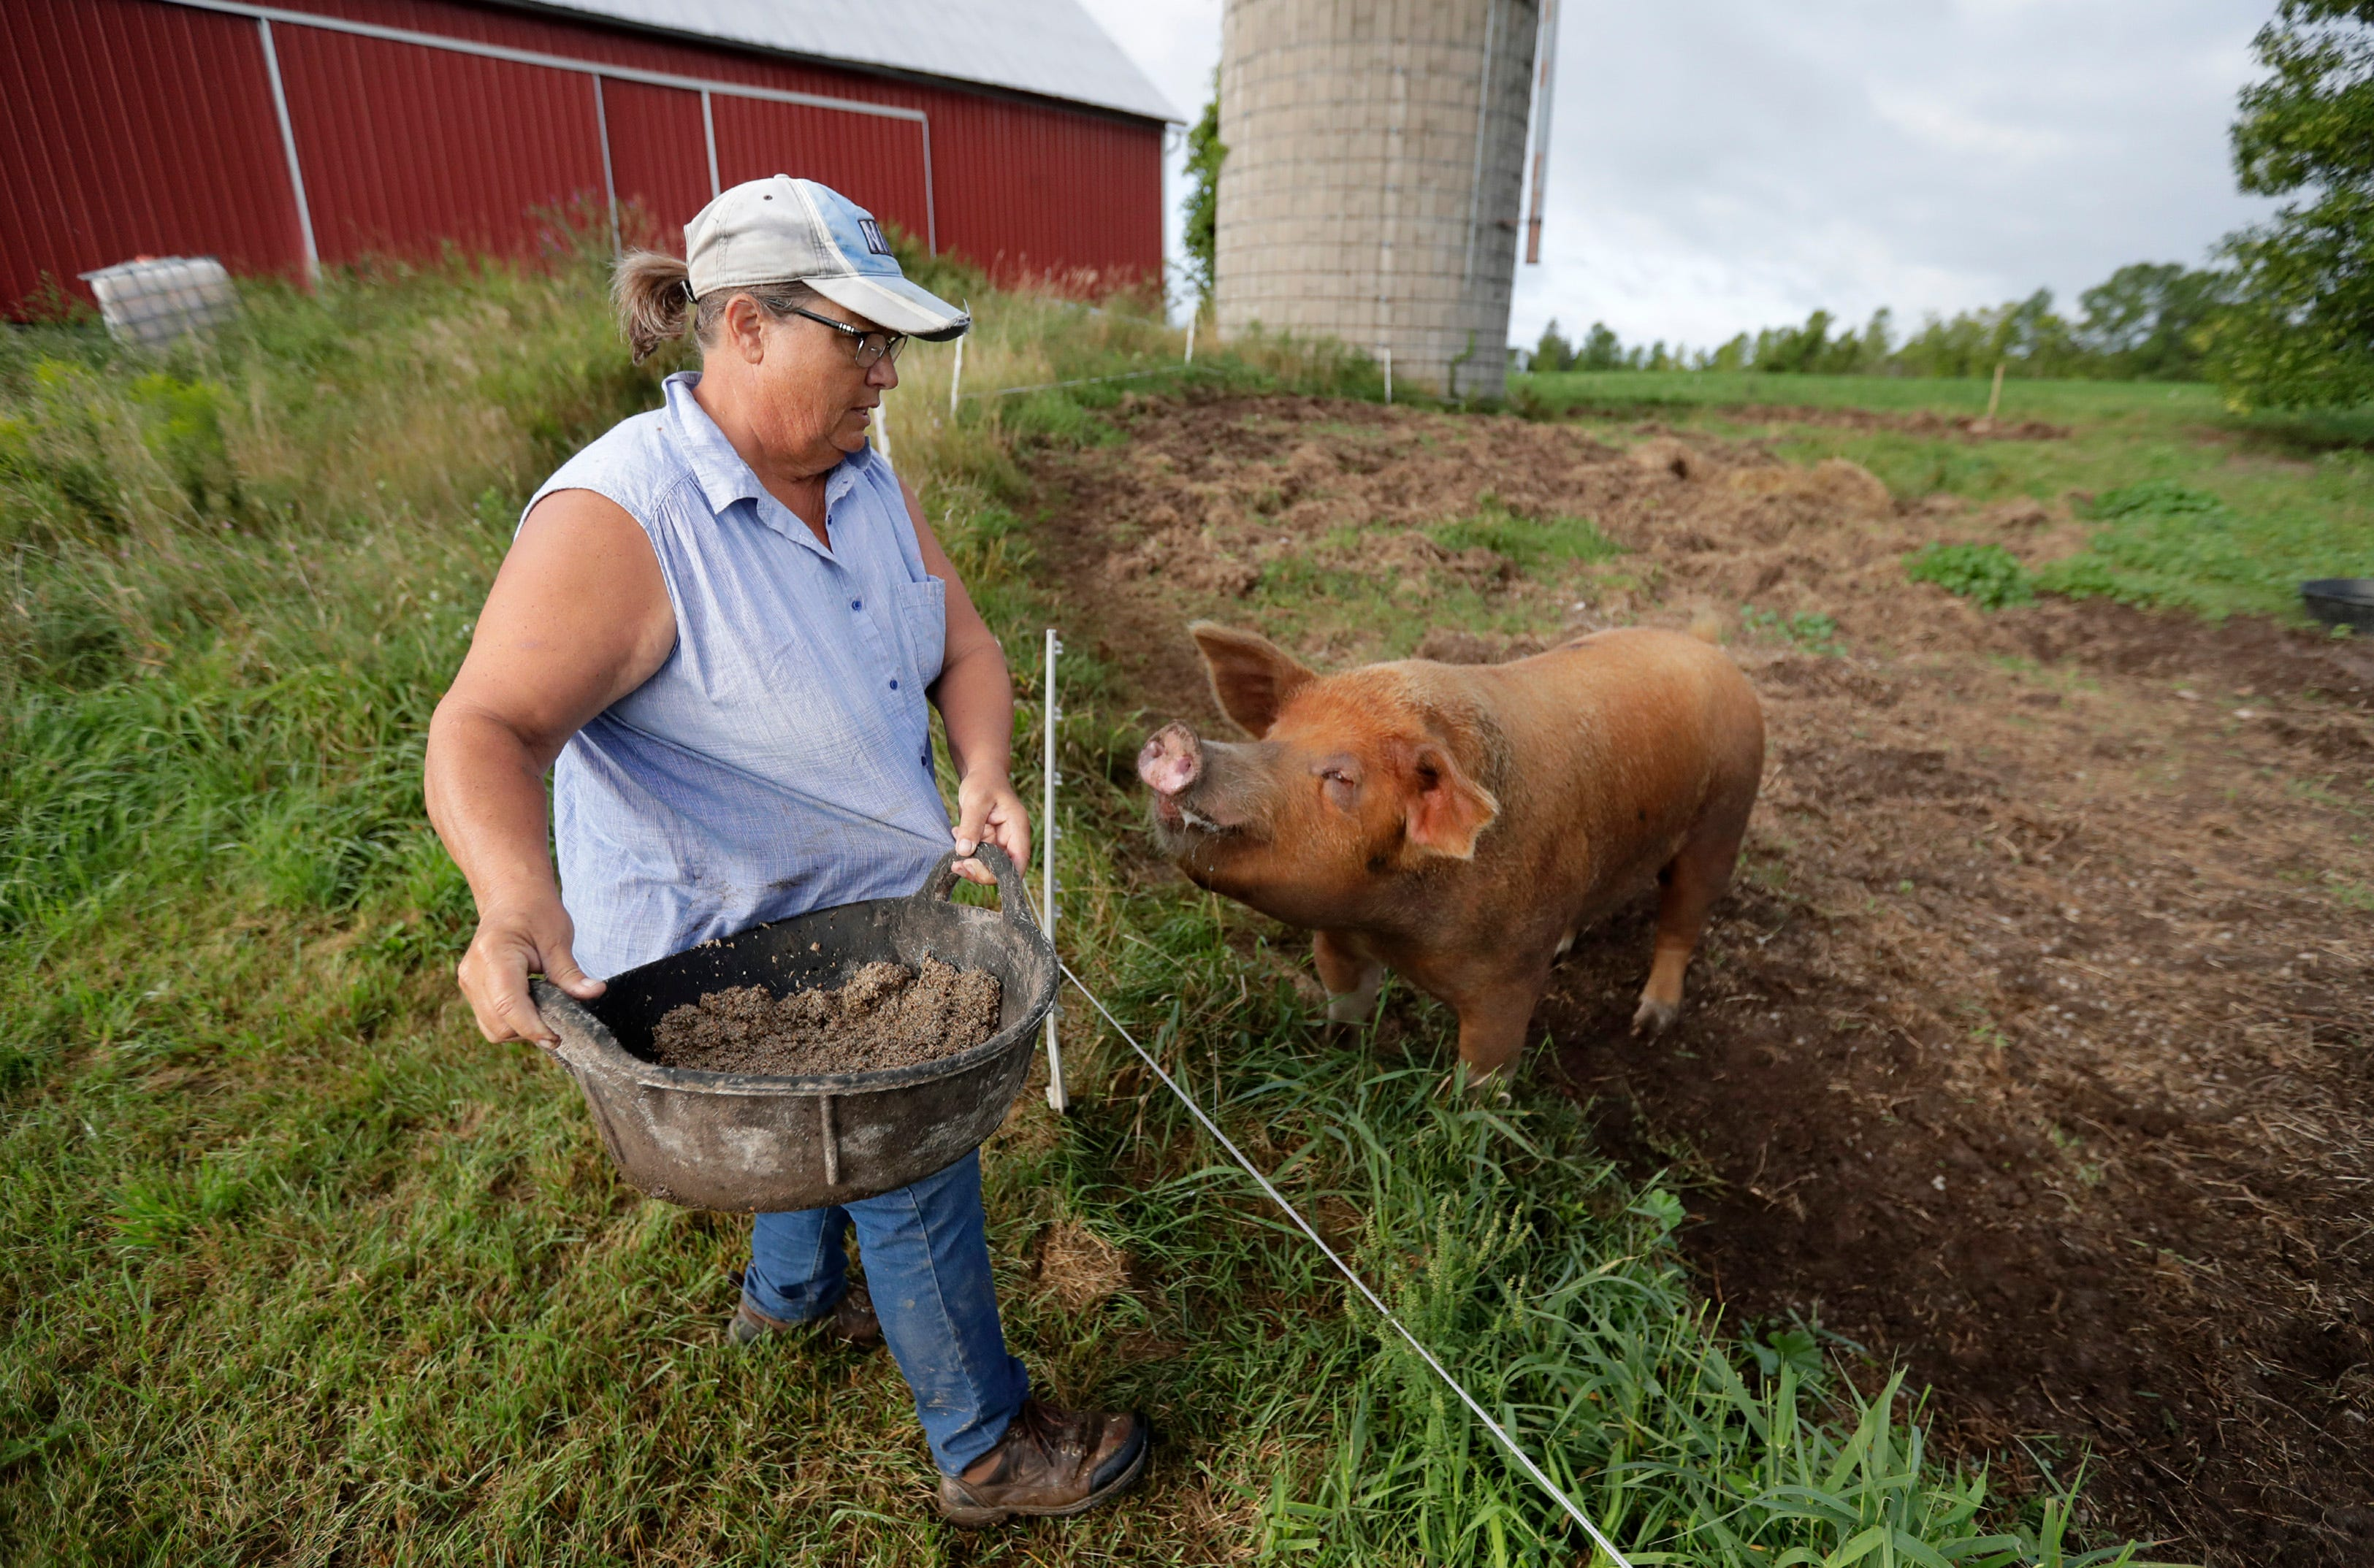 Valerie Dantoin, owner of Full Circle Community Farm, feeds Thick Boy, the farm's breeding boar, Tuesday, Aug. 27, 2019 in Seymour, Wis.